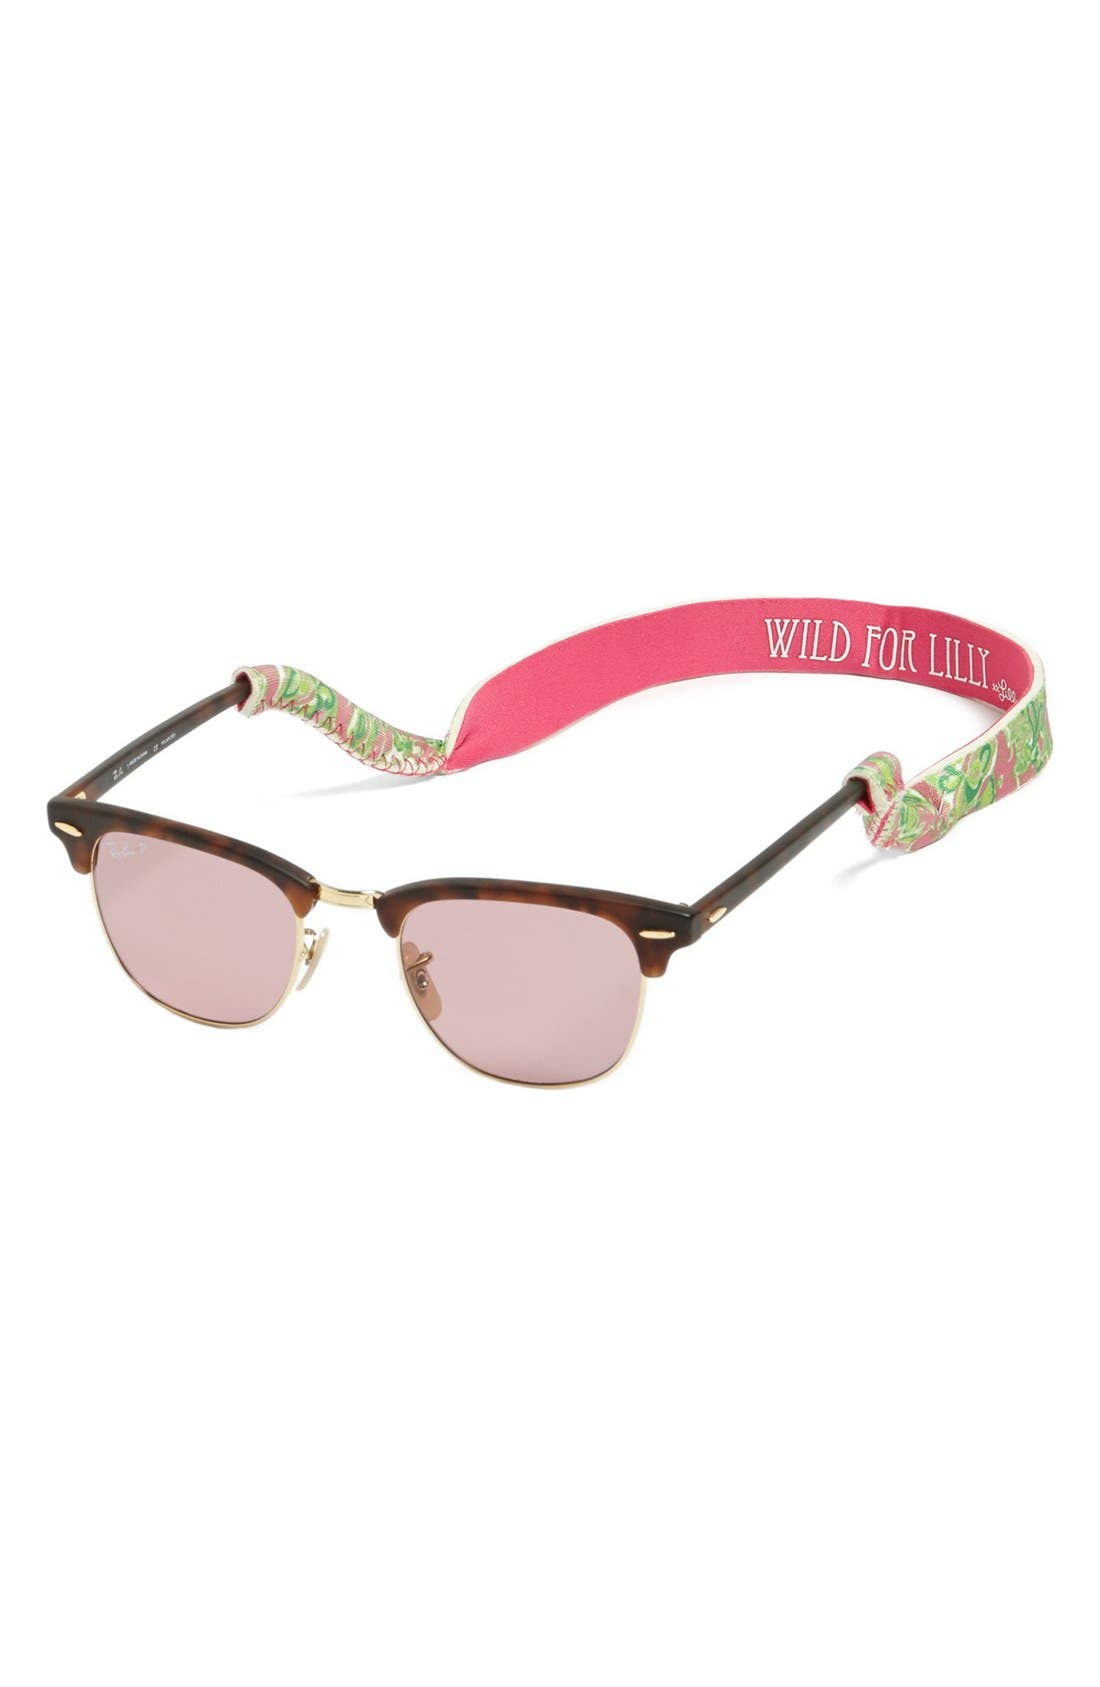 Alternate Image 1 Selected - Lilly Pulitzer® 'Chin Chin' Sunglasses Strap